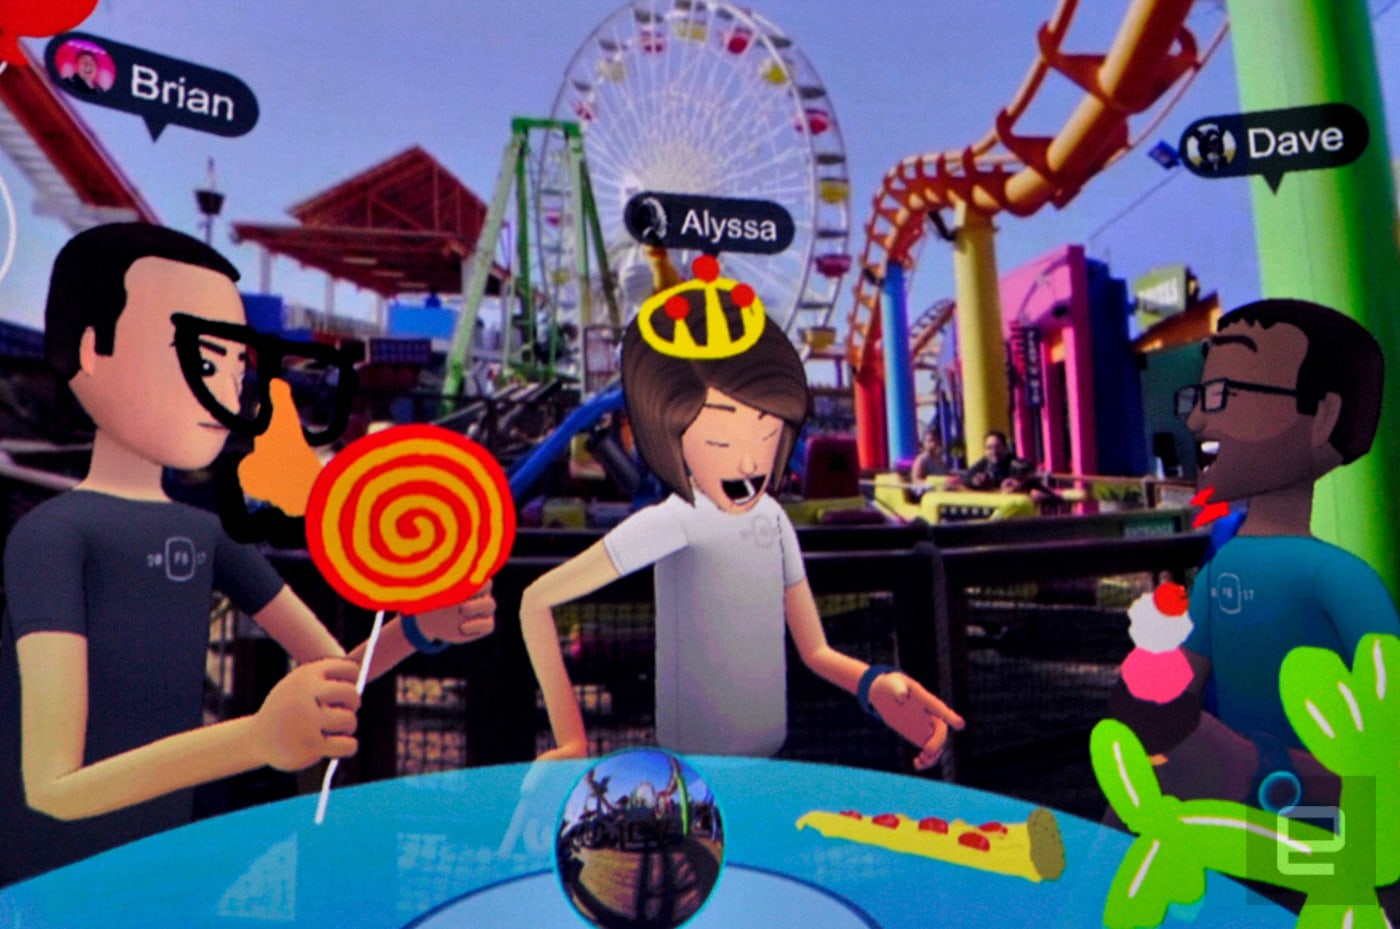 Facebook Spaces VR parties are available for Rift owners today